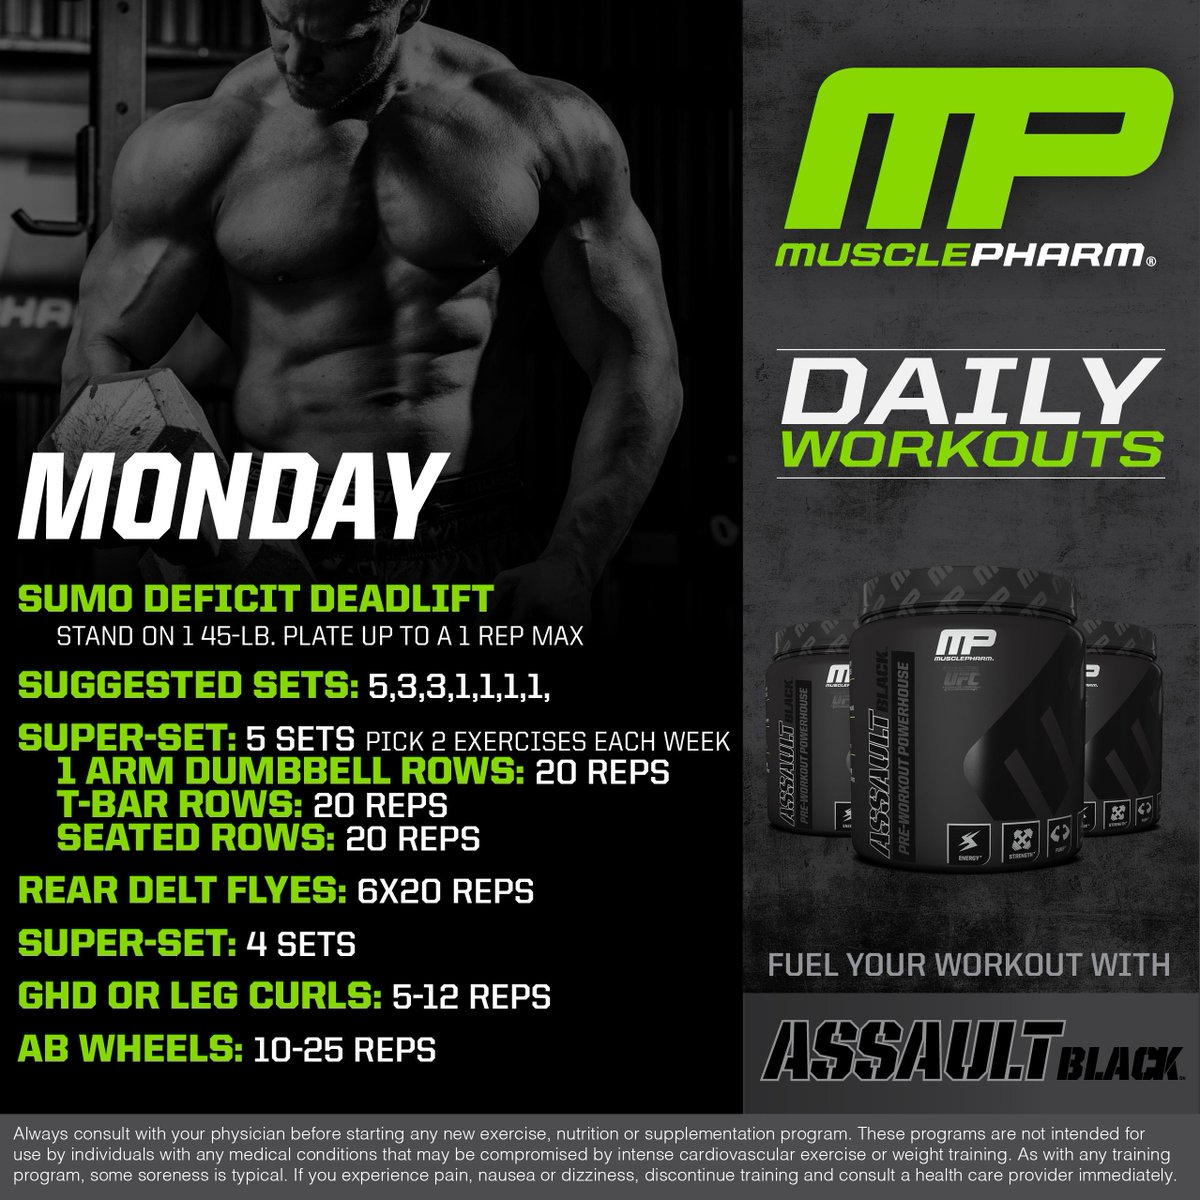 Musclepharm workouts pdf workout schedule musclepharm workouts pdf workout schedule malvernweather Images